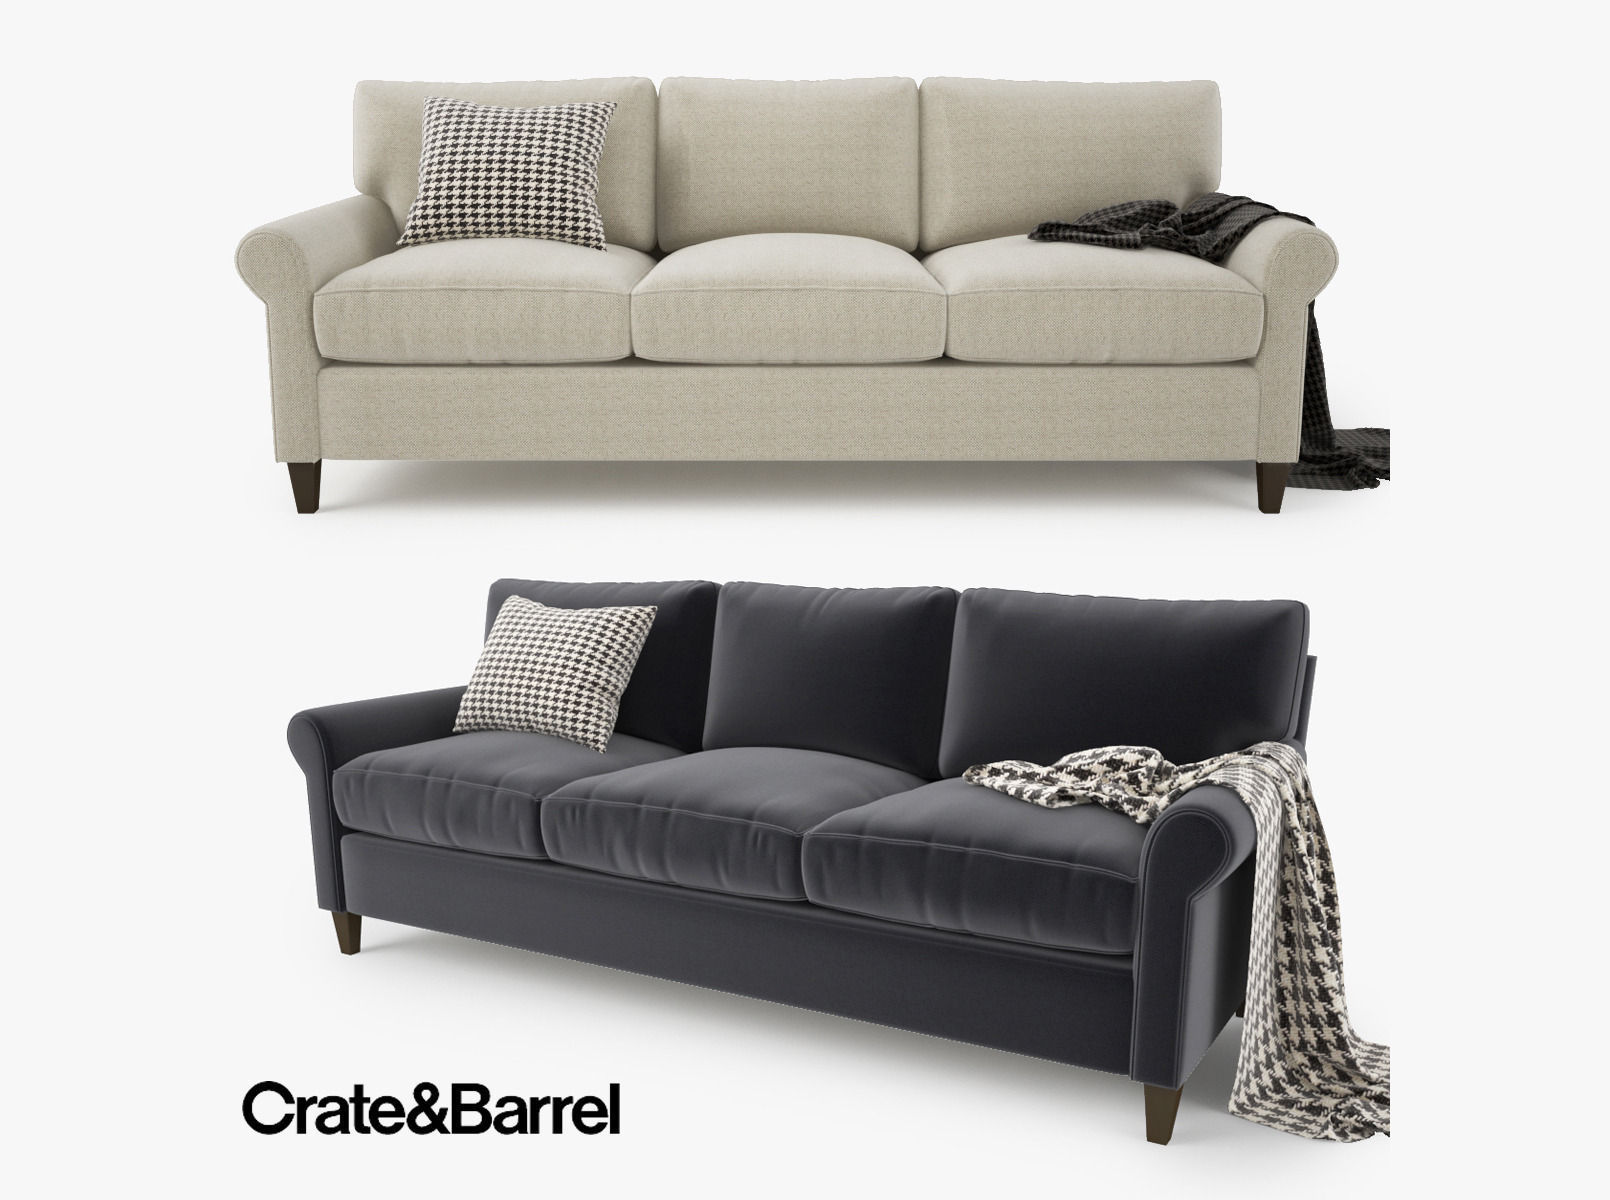 Axis Sectional Sofa | Crate and Barrel Couch Covers | Crate and Barrel Couch